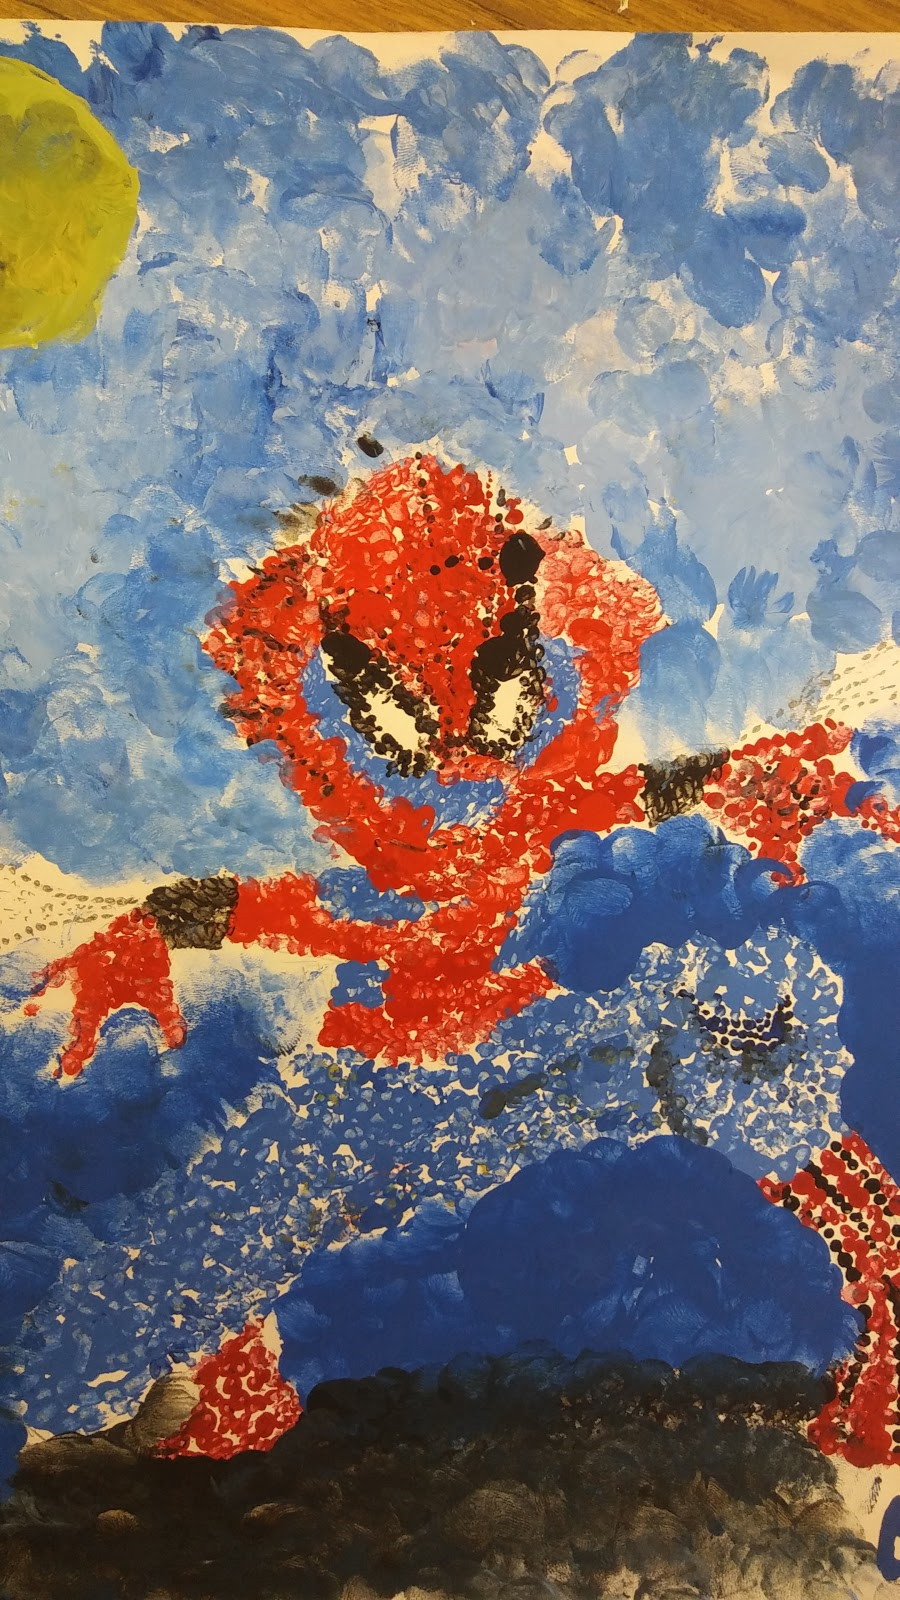 Landmark Student Painting of Spiderman